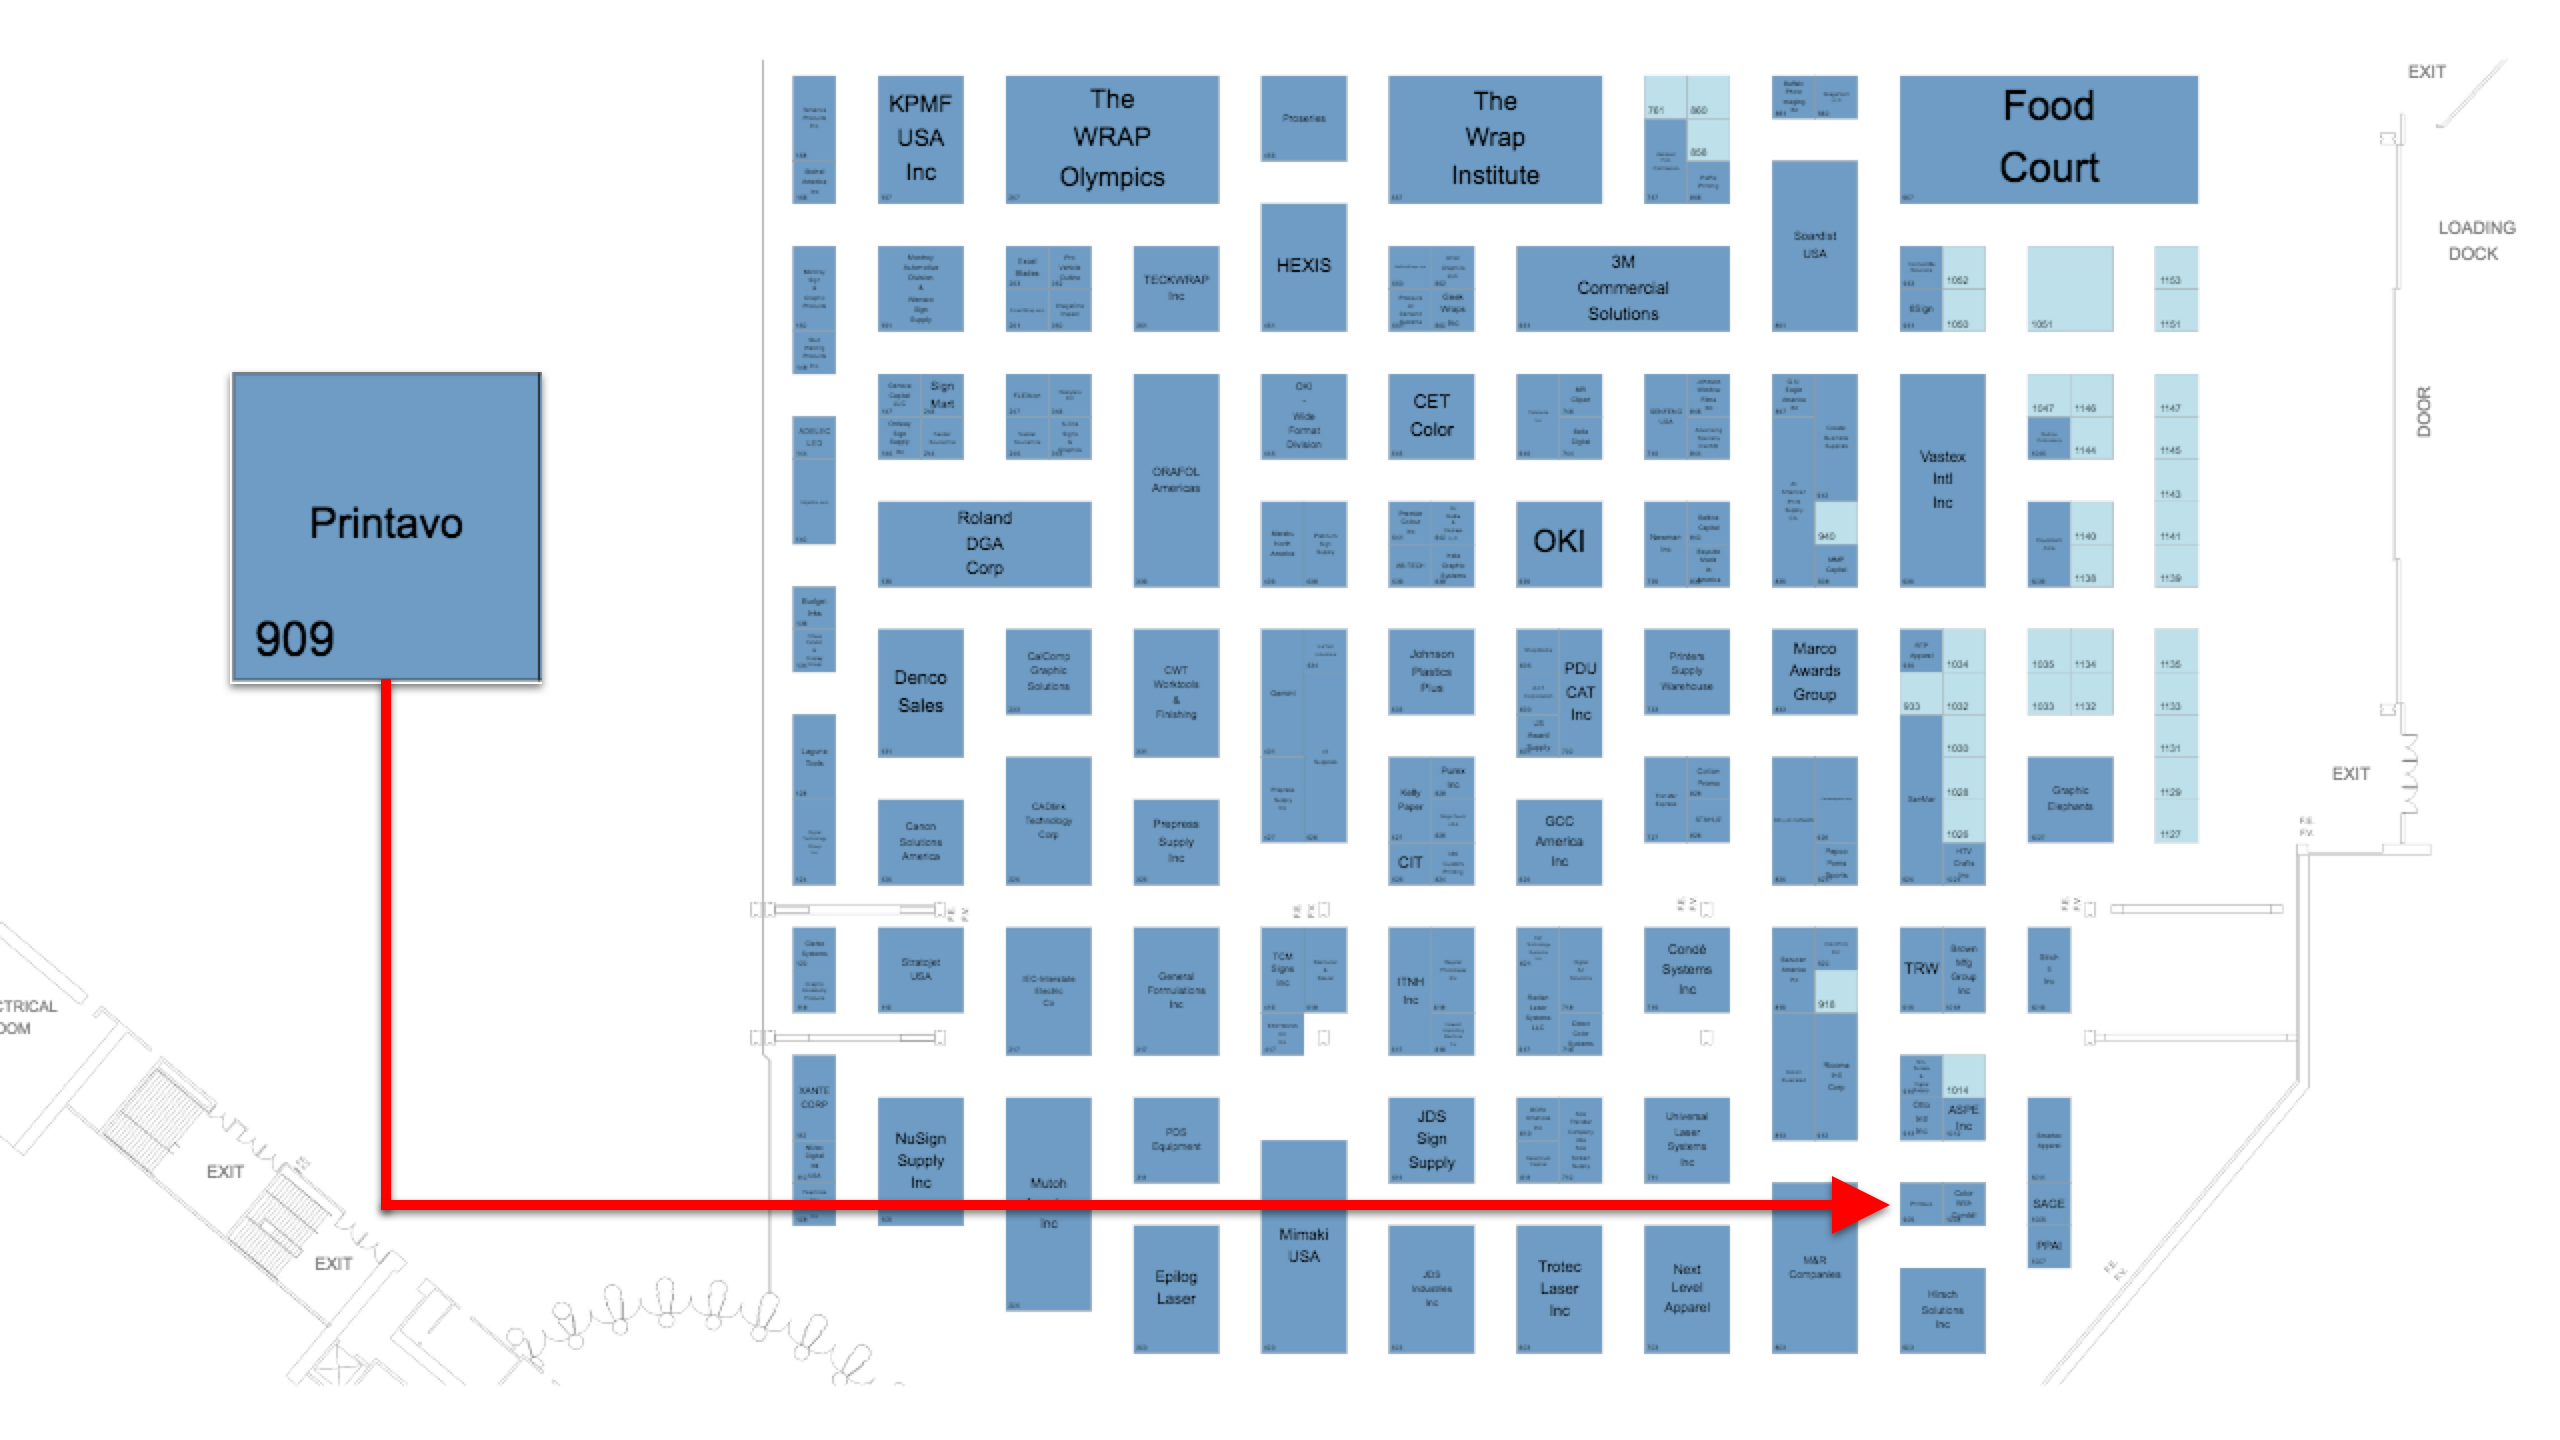 NBM Long Beach 2019 trade show floor plan with a map to Printavo's booth.